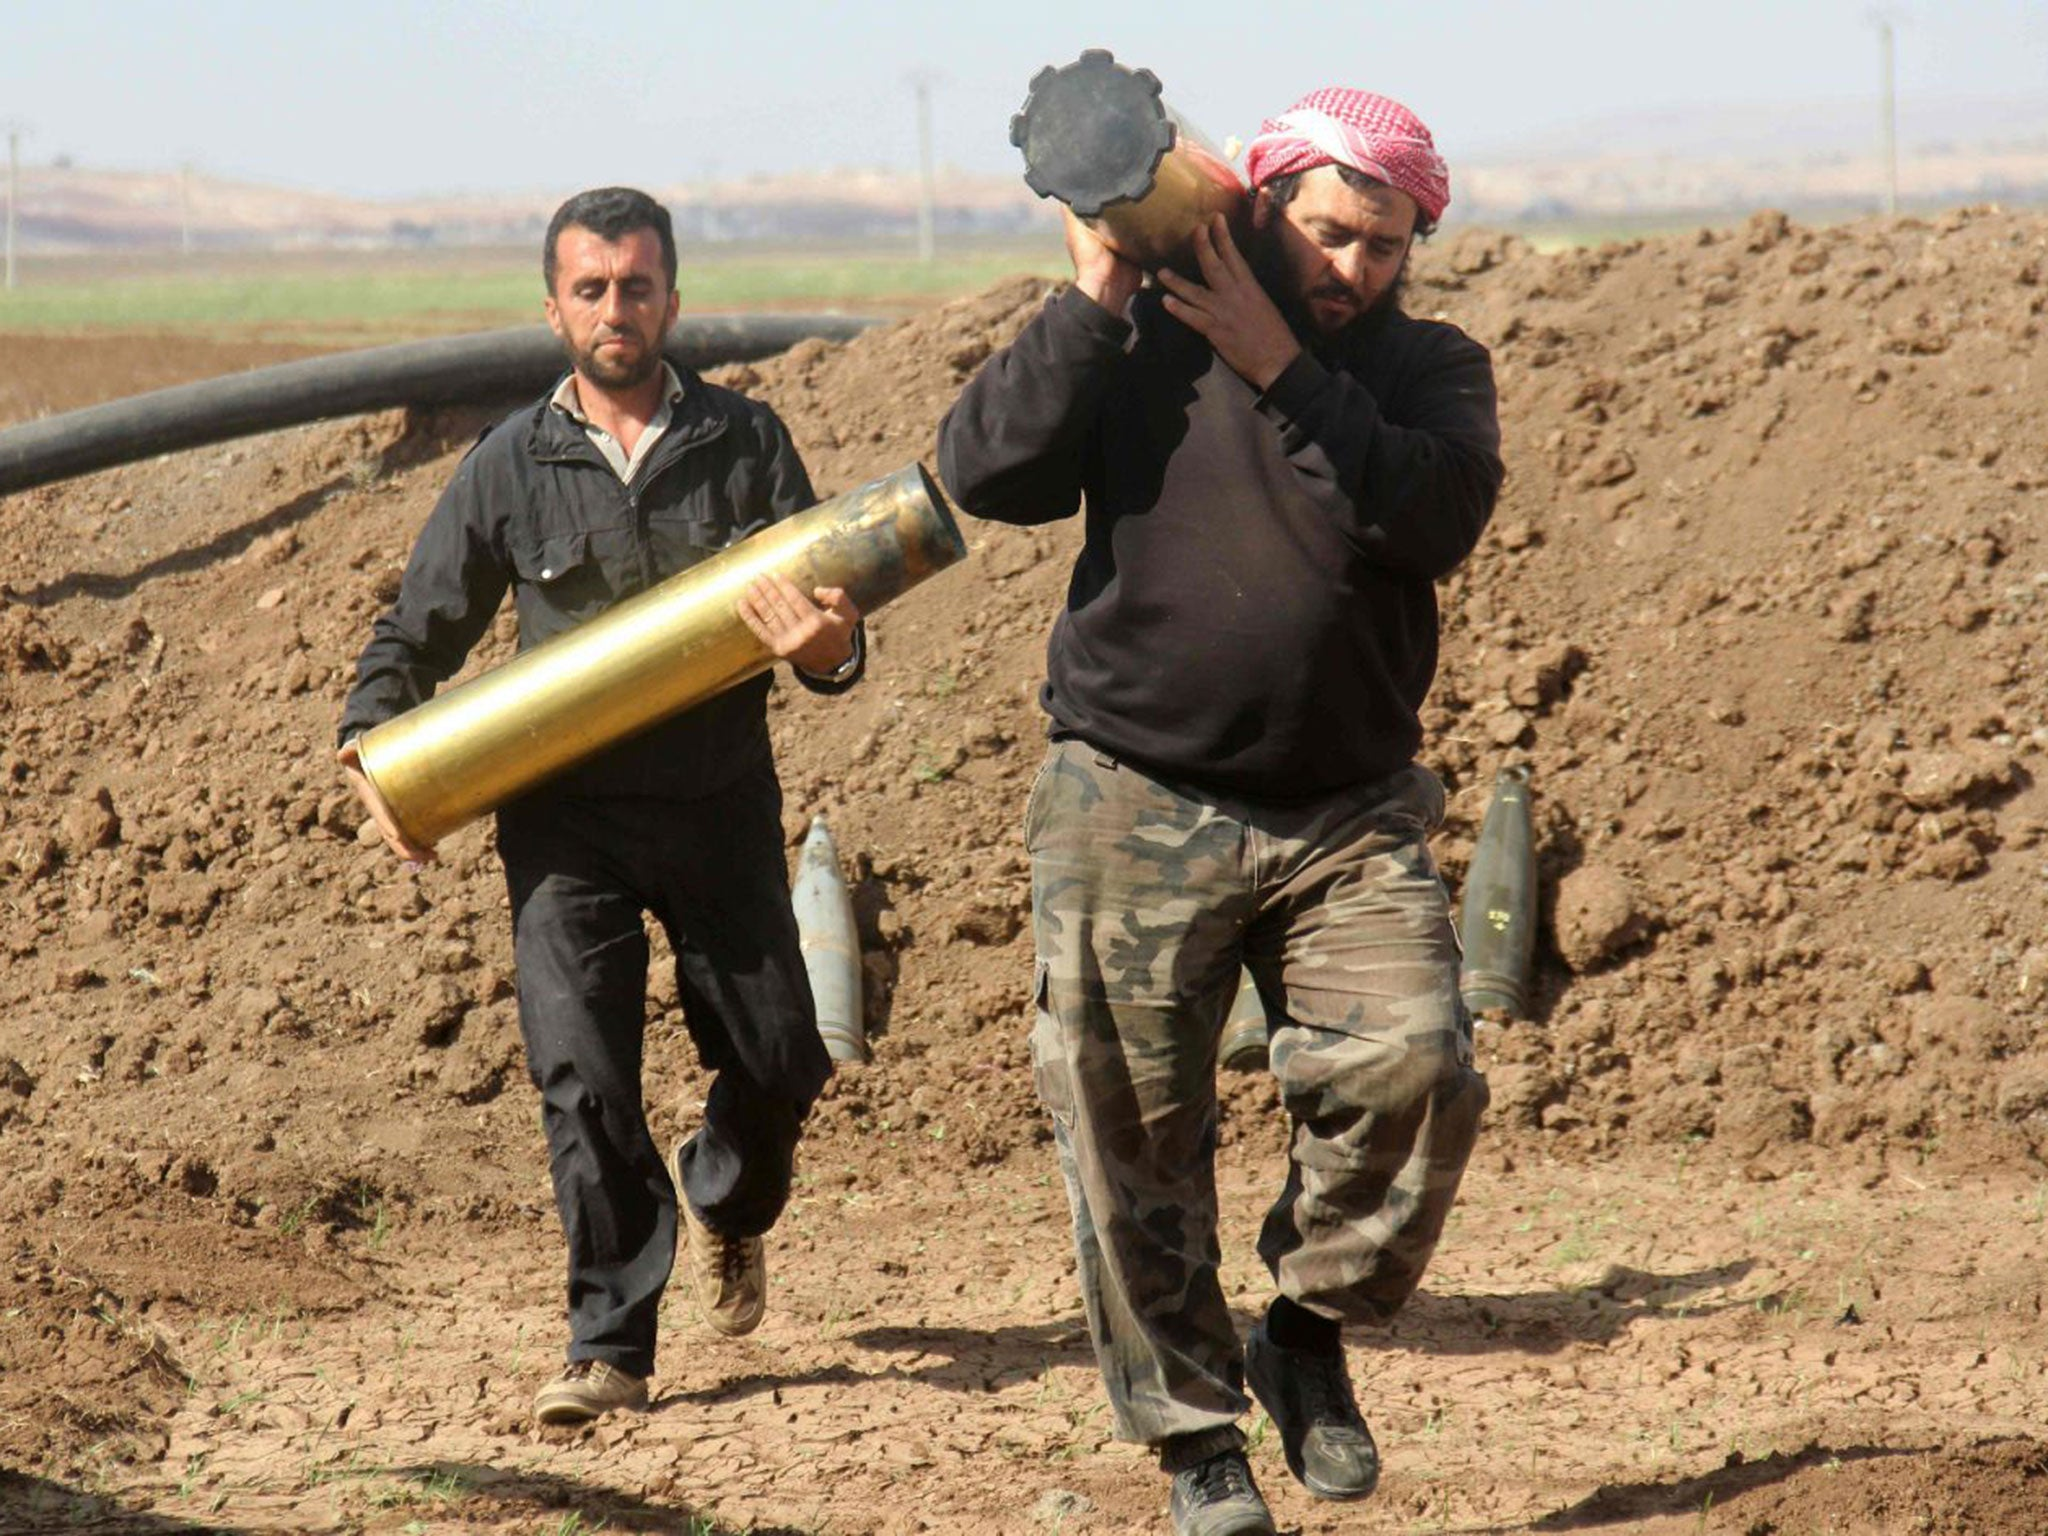 syrian civil war clashes between assad troops and